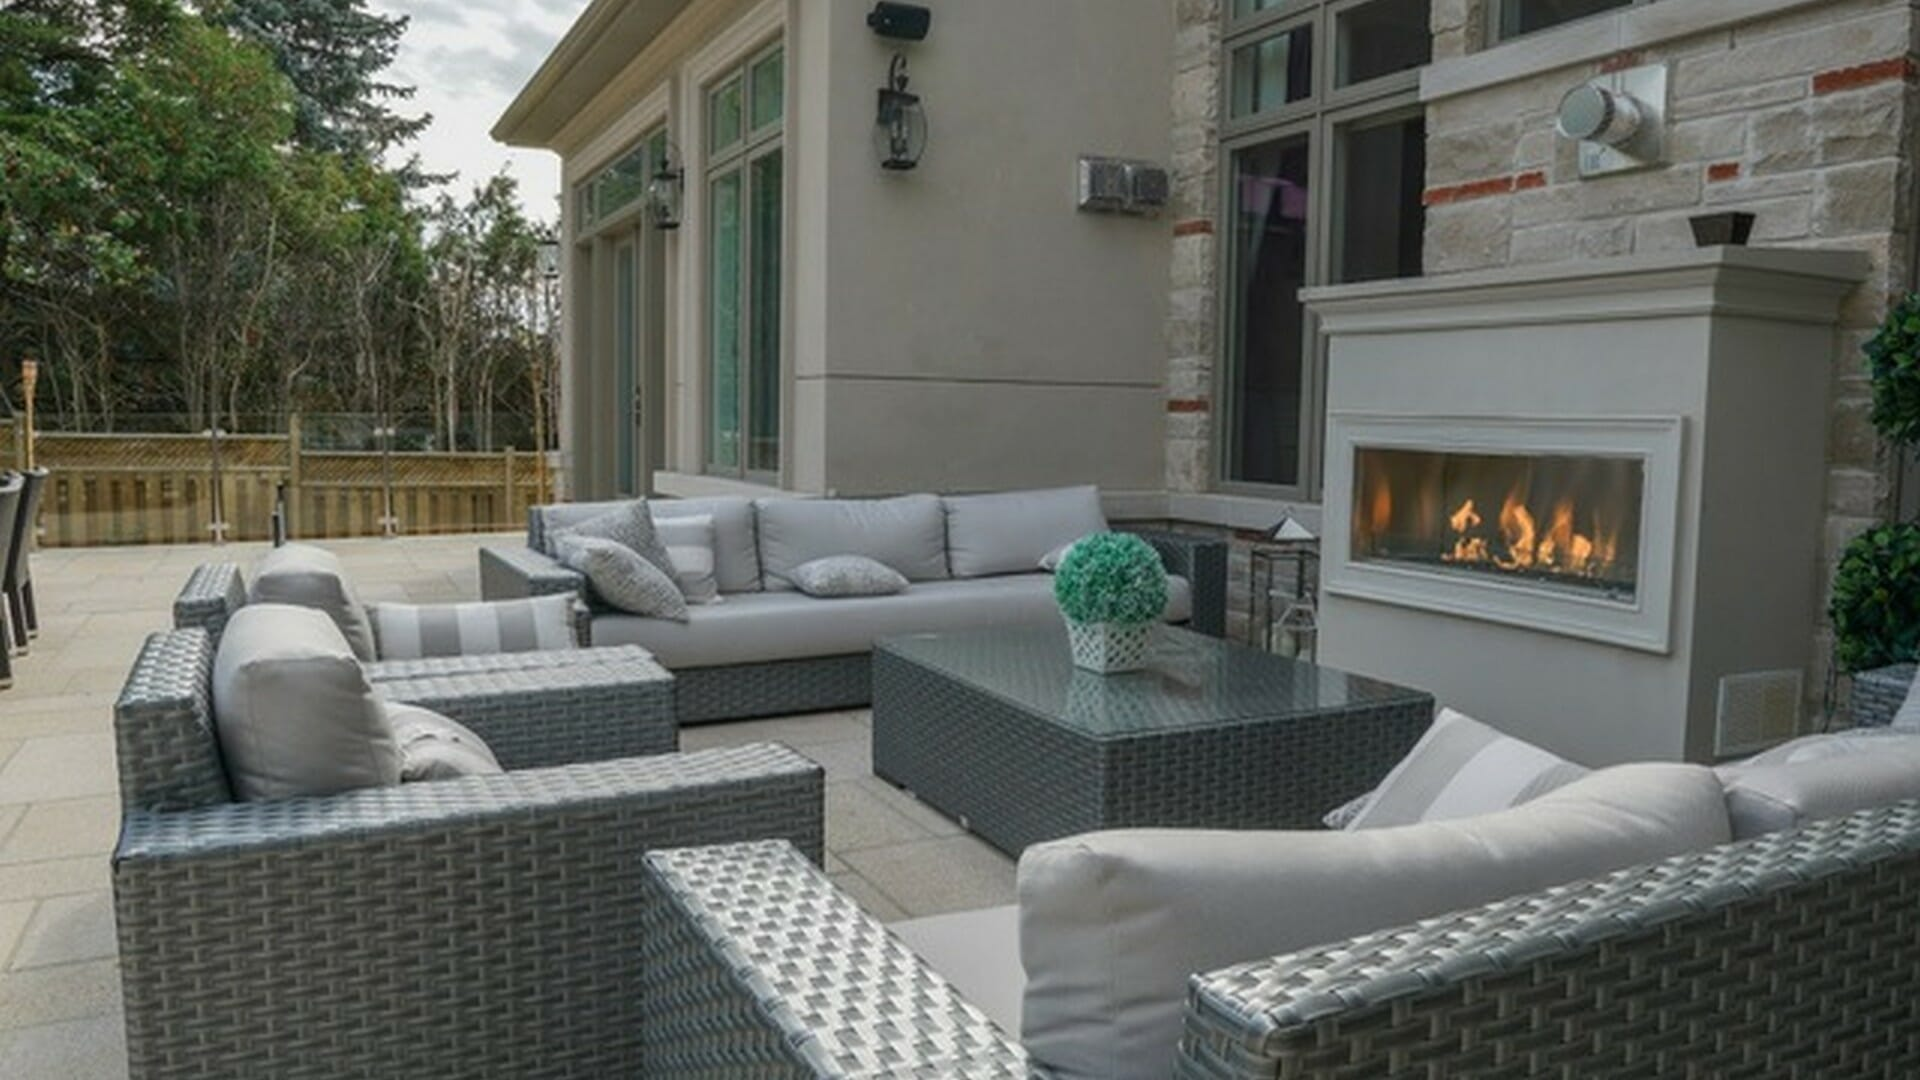 Fireplace, stone veneer, interlocking, tempered glass railings, outdoor furniture, stone deck